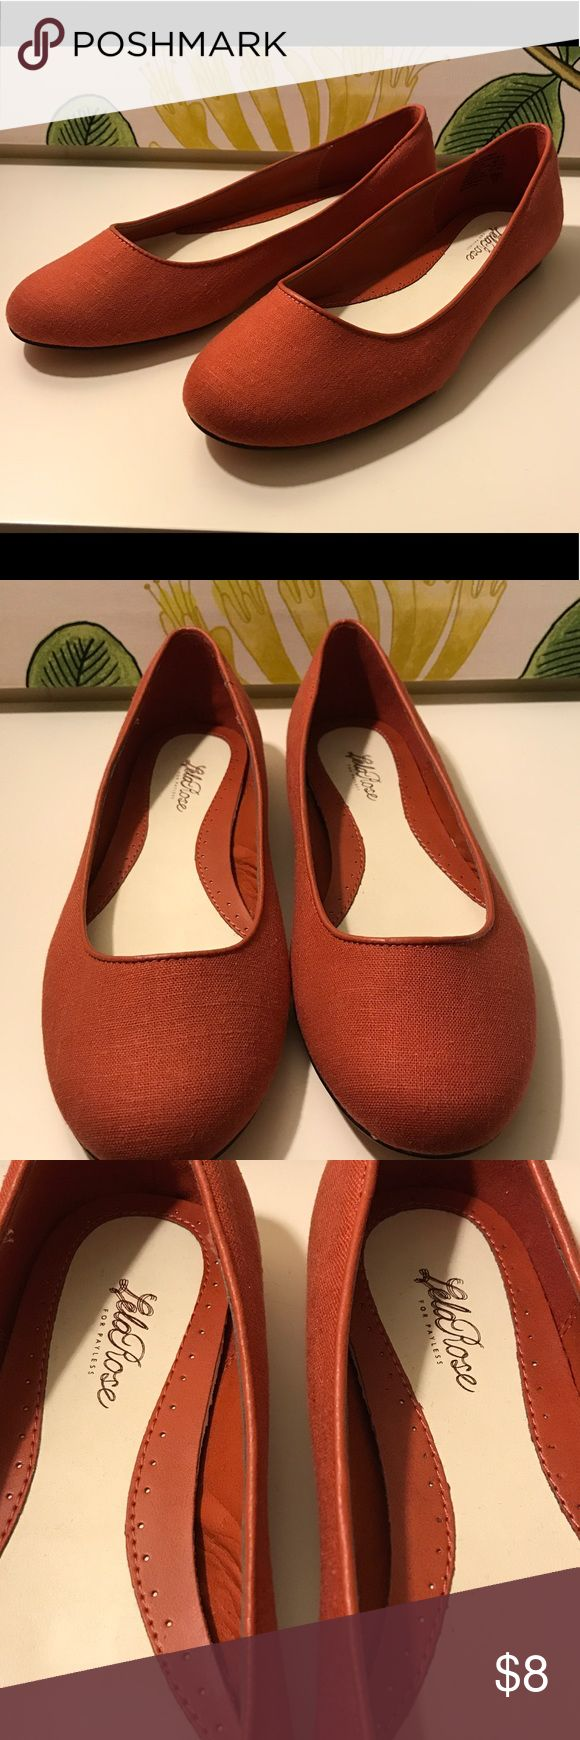 Lela Rose shoes for Payless Brand new burnt orange ballet flats. Last picture shows how great it is to bundle. Buy 3 get 15% off.No trades. No low offers. Shoes